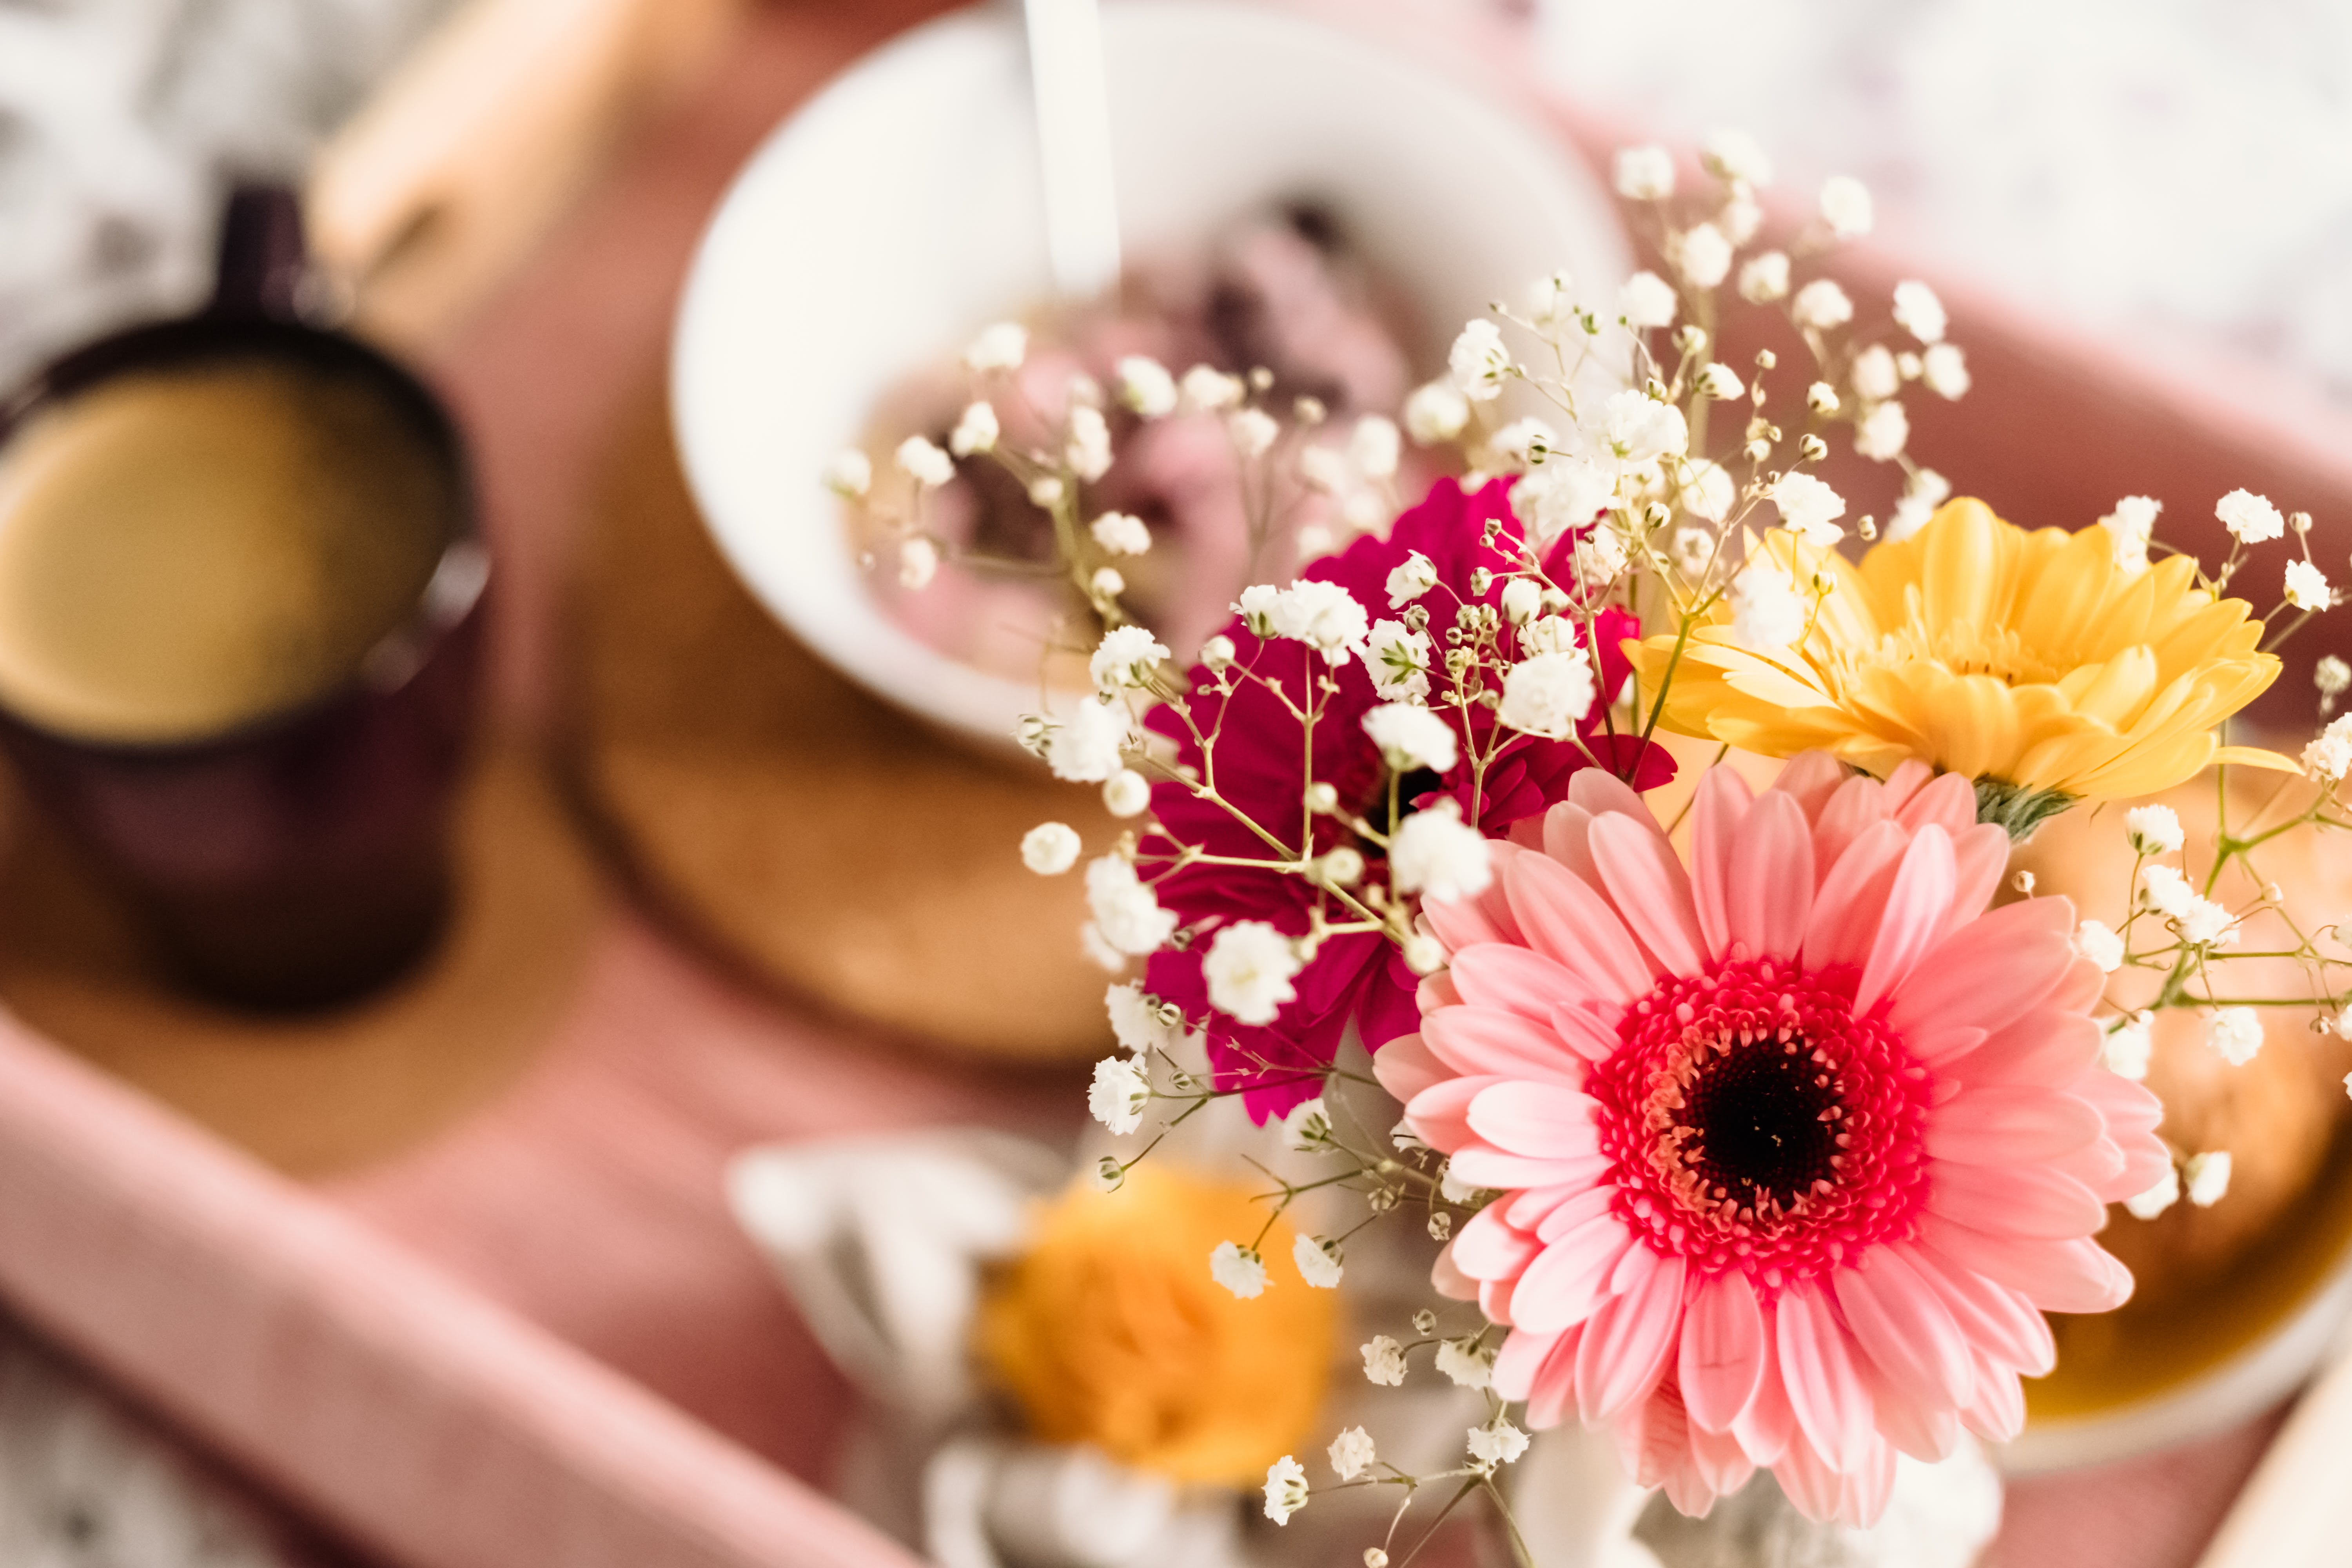 Shallow Focus Photography of Coffee and Dish With Pink Gerbera Daisy